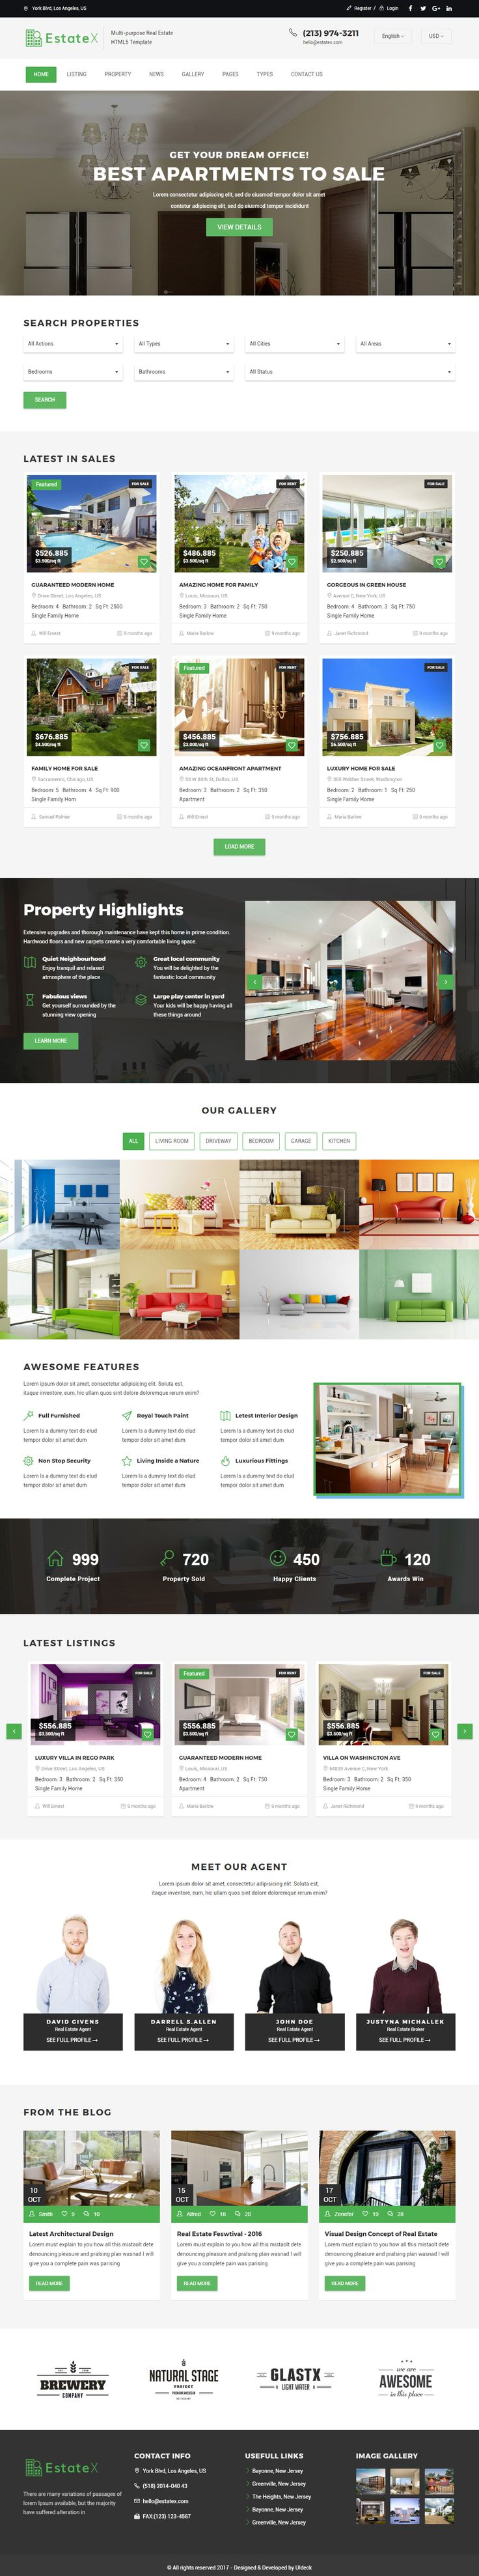 EstateX is Premium full Responsive Retina #RealEstate HTML5 Template. Bootstrap 3 Framework. If you like this #MaterialDesignTemplate visit our handpicked list of best #MaterialDesign Templates at: http://www.responsivemiracle.com/best-responsive-material-design-template-html5/